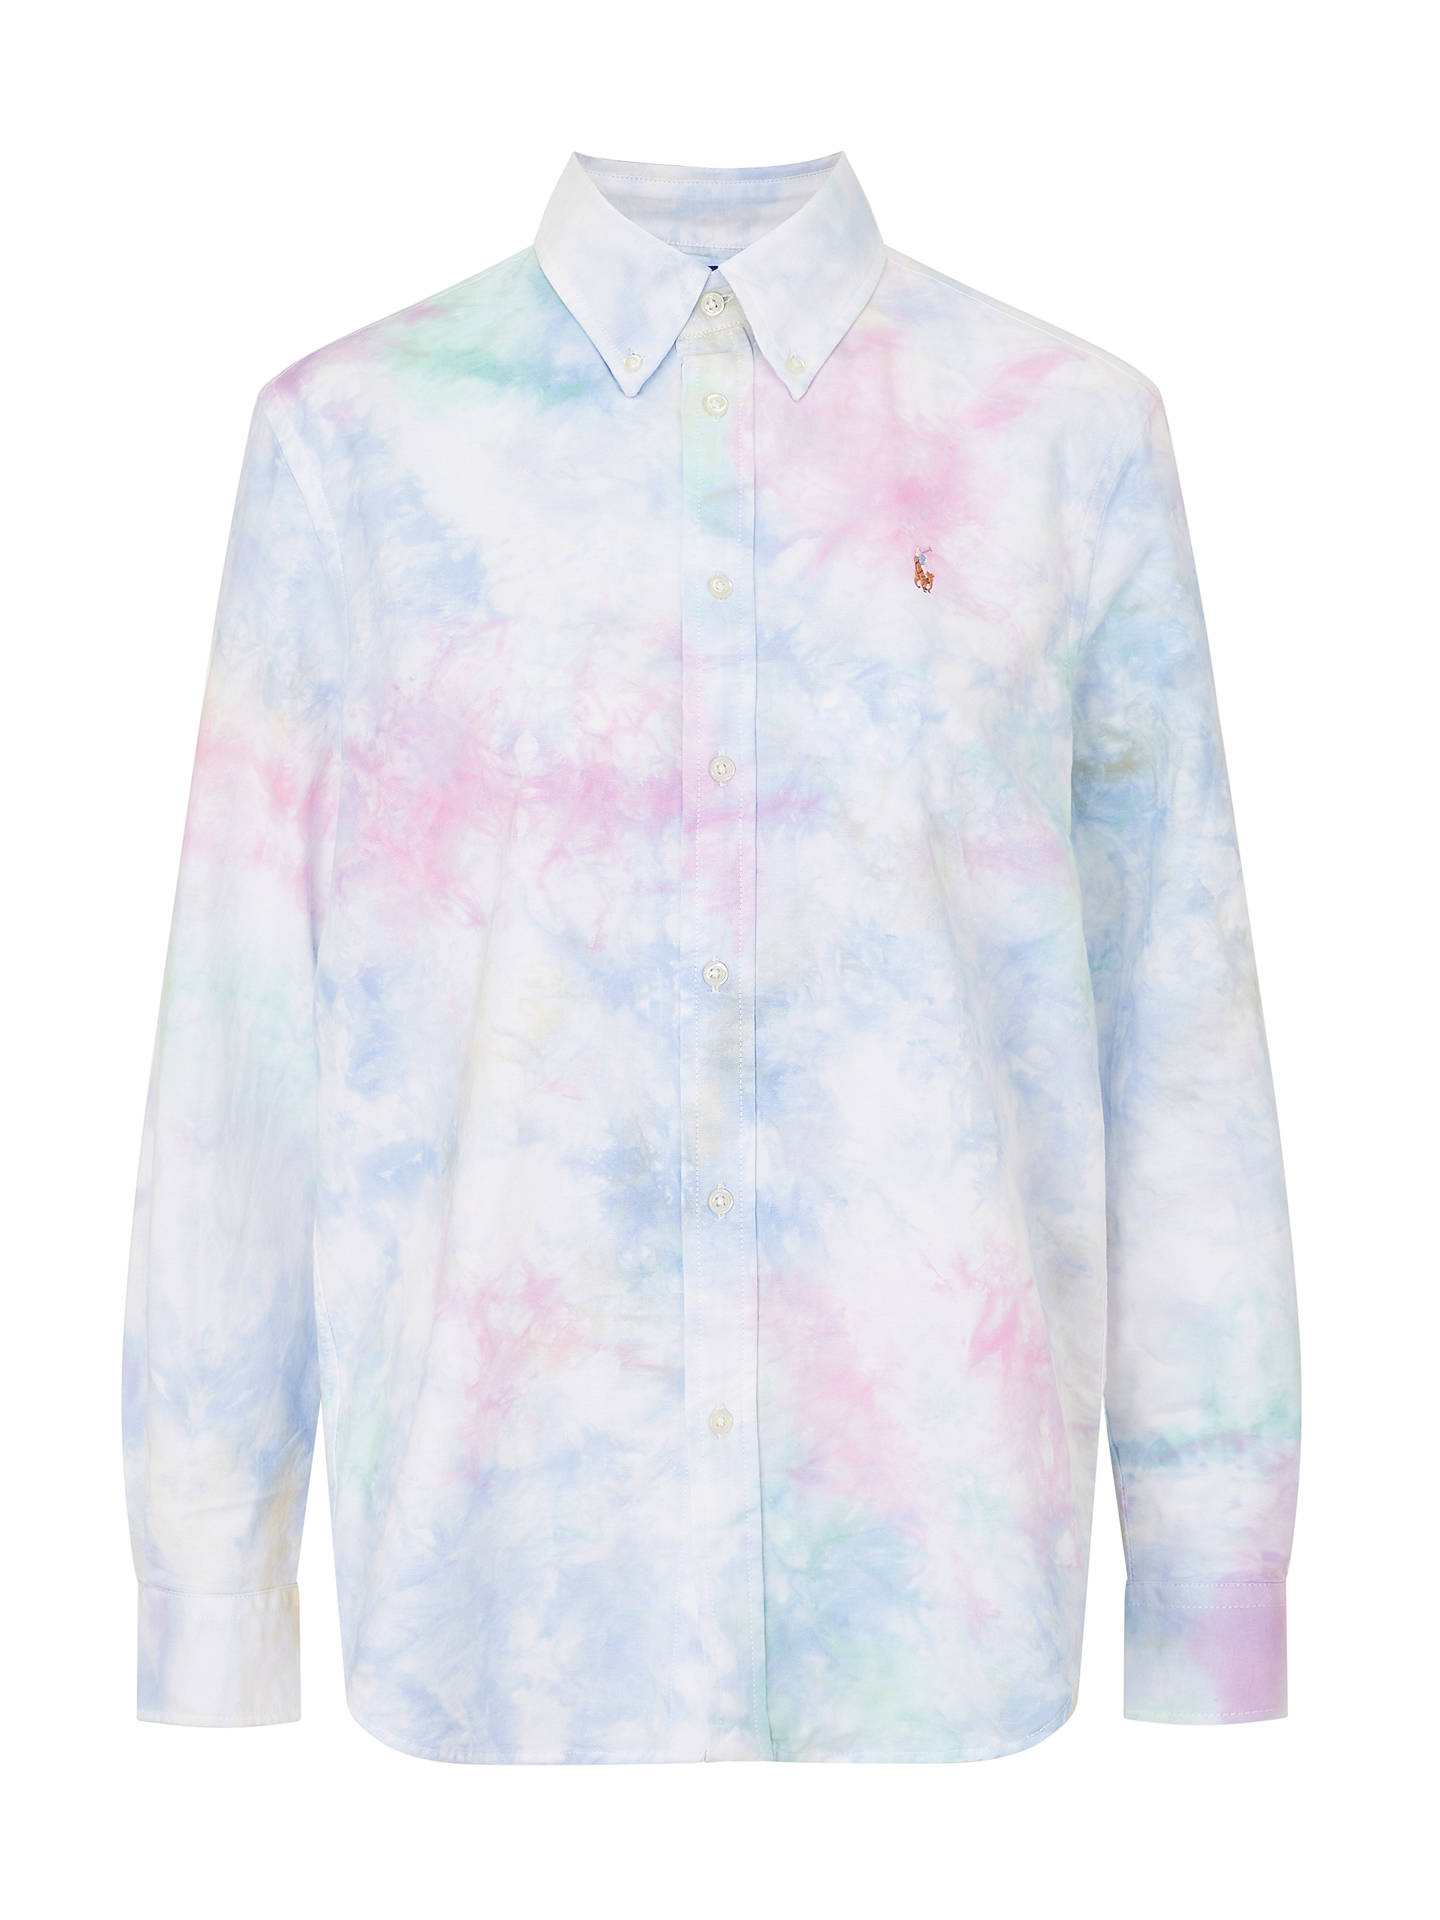 Buy Polo Ralph Lauren Relaxed Tie Dye Shirt, White/Multi, M Online at johnlewis.com